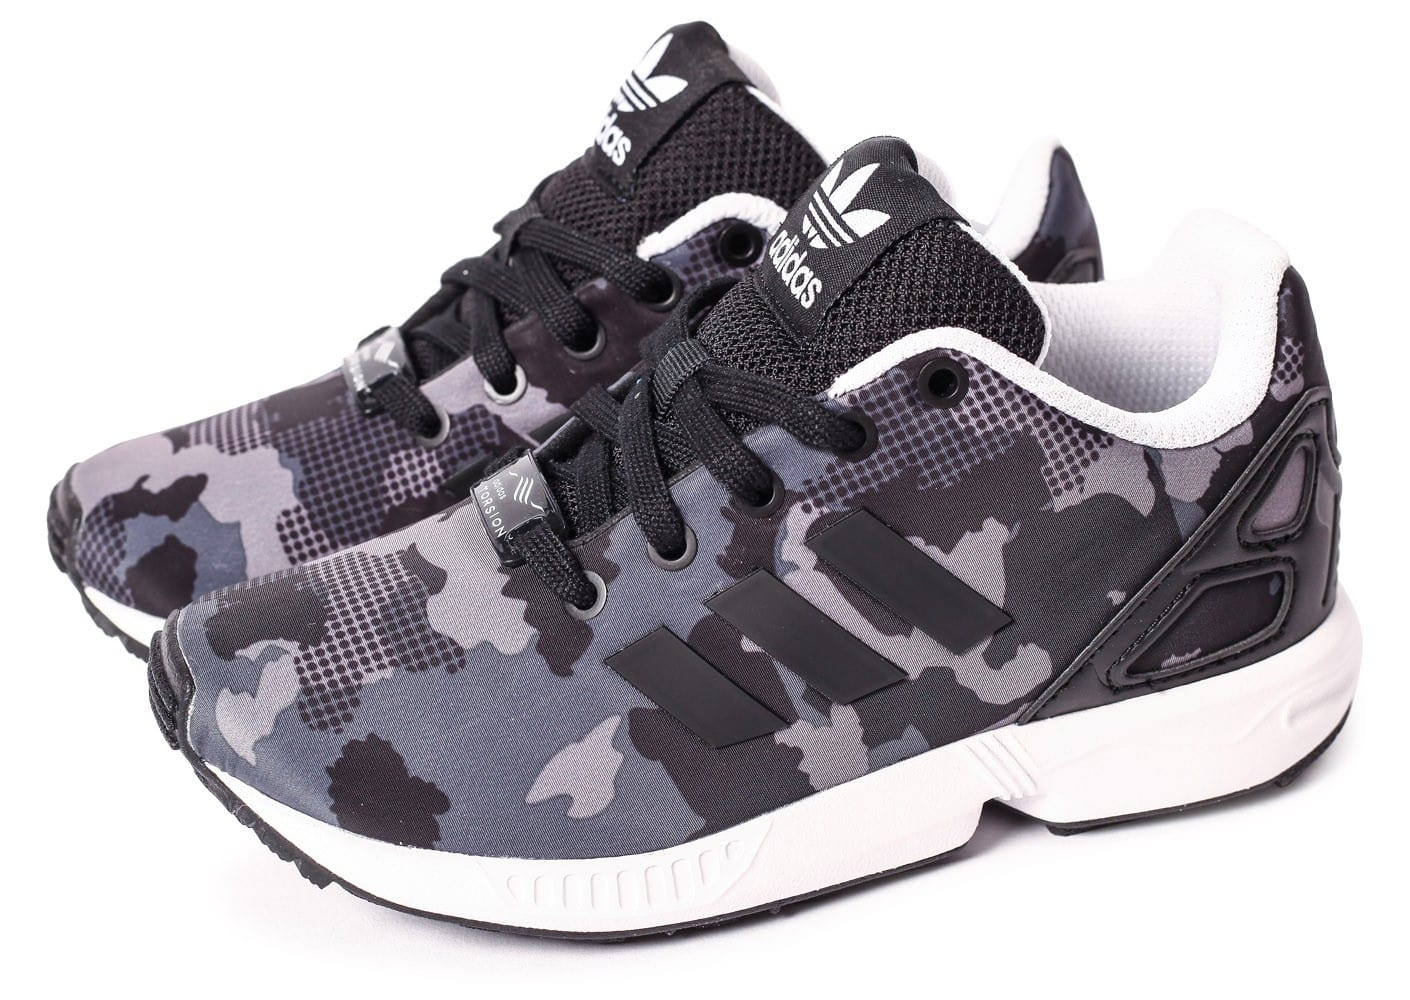 adidas ZX Flux EL Camo noire Chaussures adidas Chausport